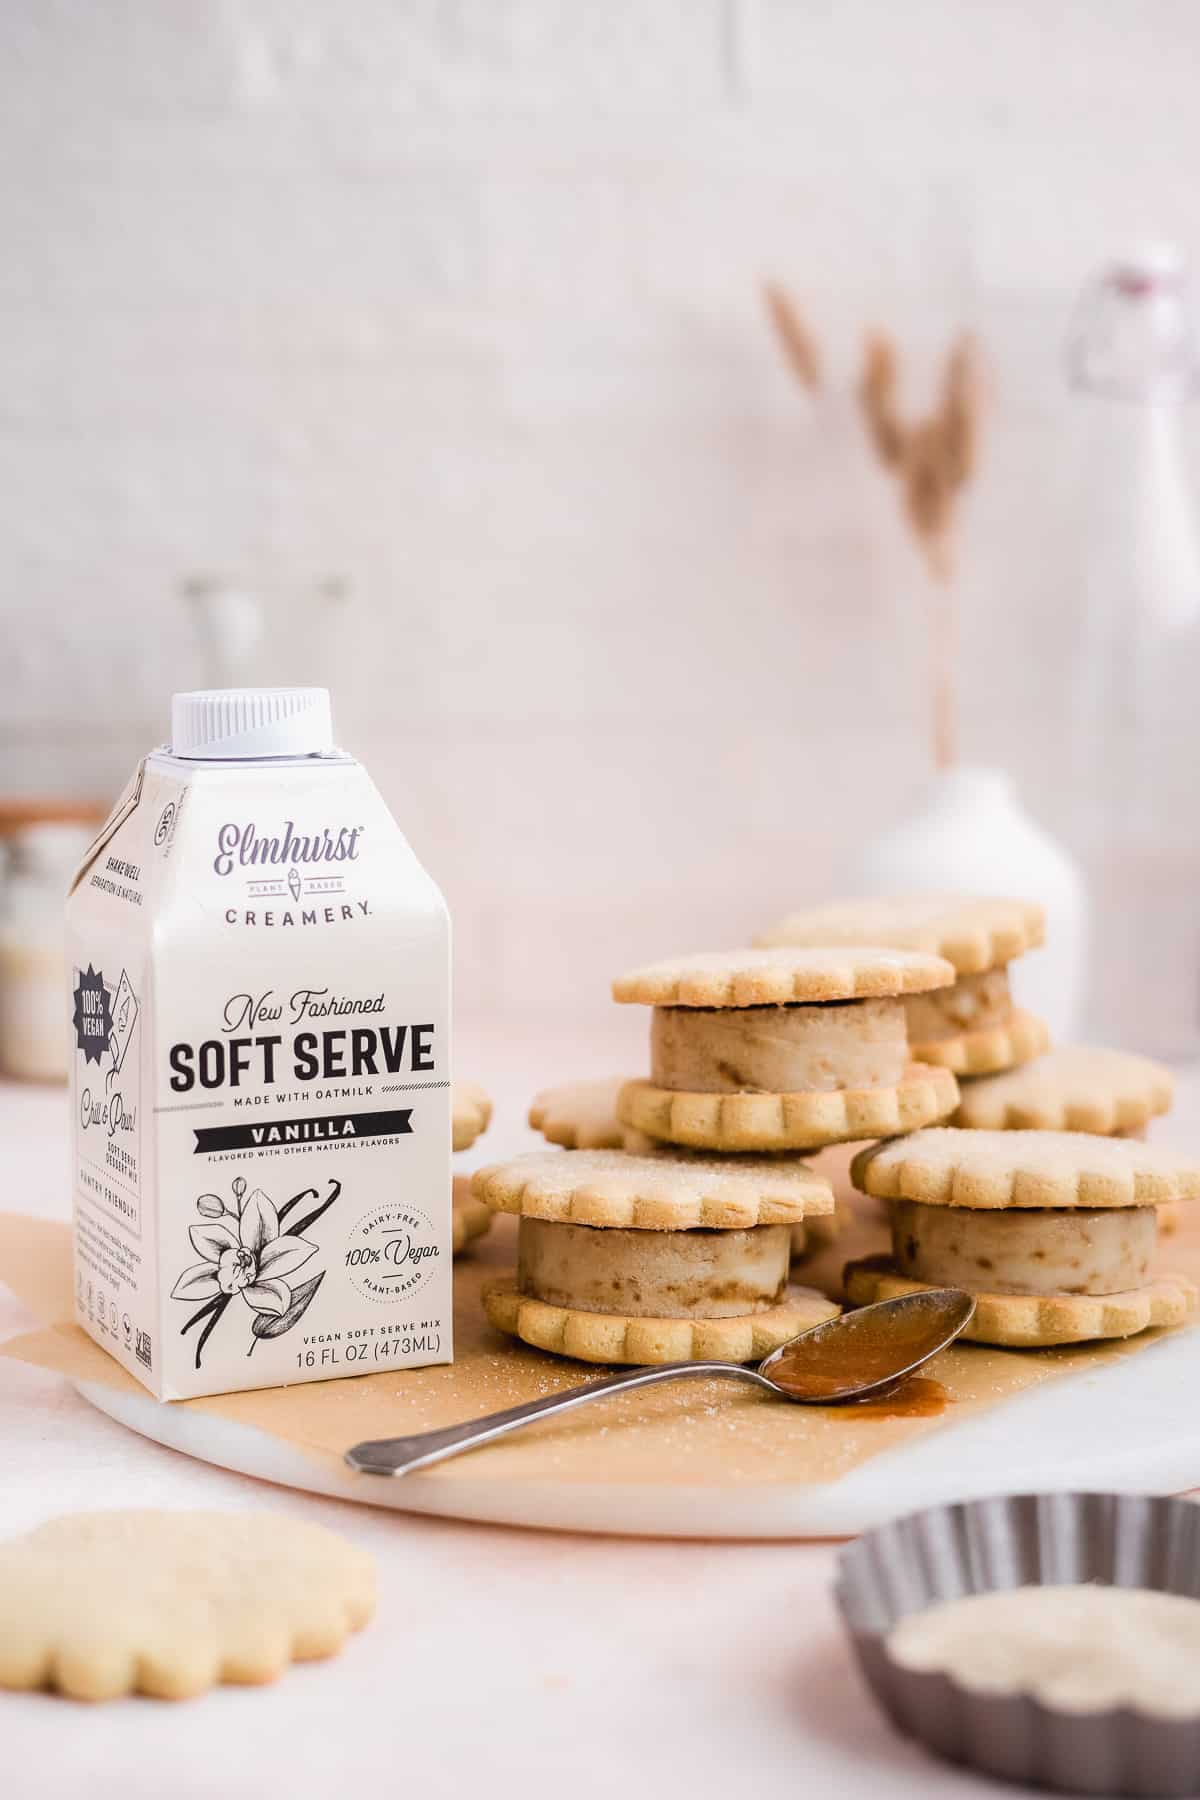 Photo shot from a the side showing multiple stacks of caramel sugar cookie ice cream sandwiches sitting on parchment paper on top of a marble slab.  A carton of Elmhurst's new dairy free ice cream mix and a silver spoon dipped in caramel sauce are placed nearby.